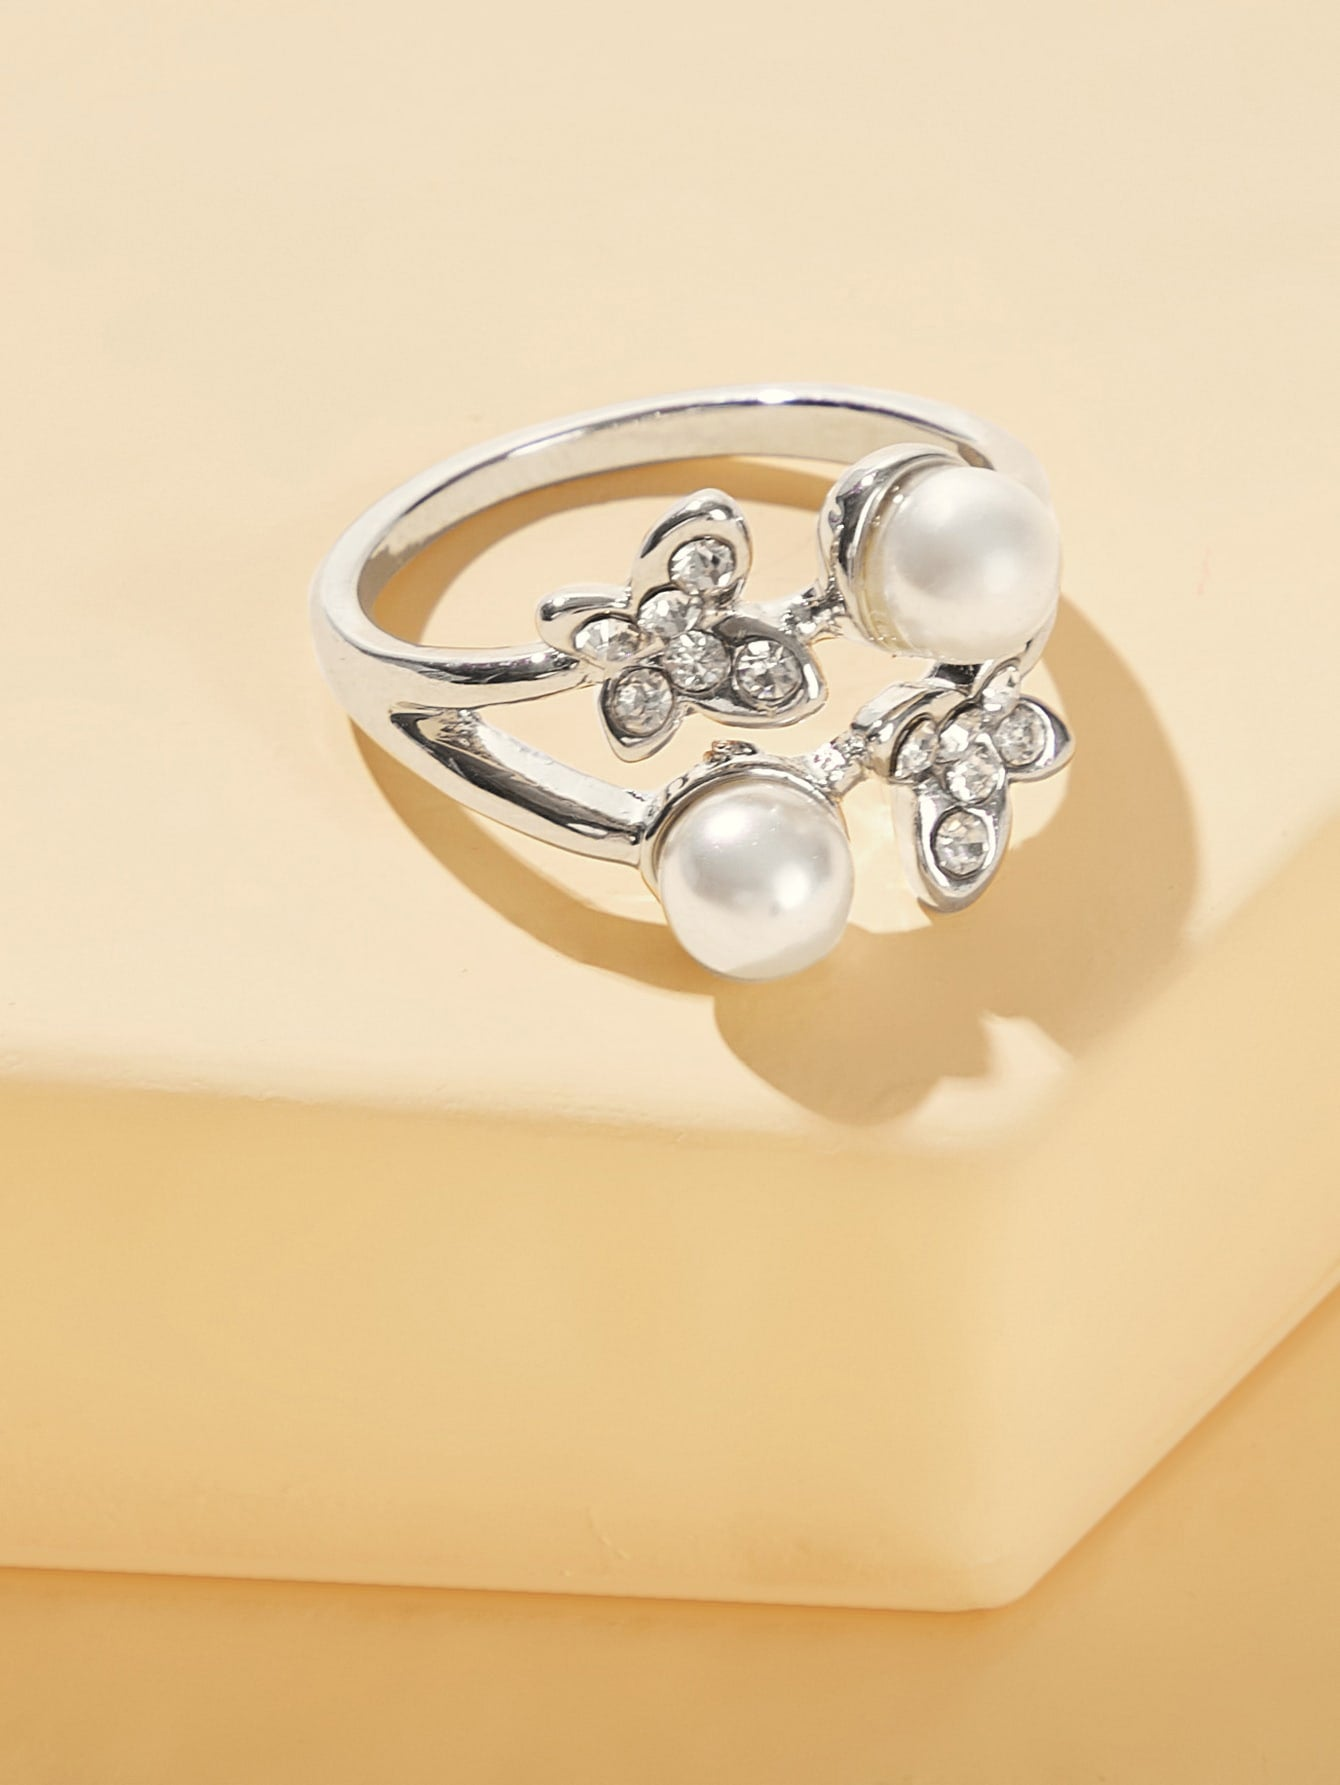 Silver Rhinestone With Faux Pearl Layered Ring 1pc